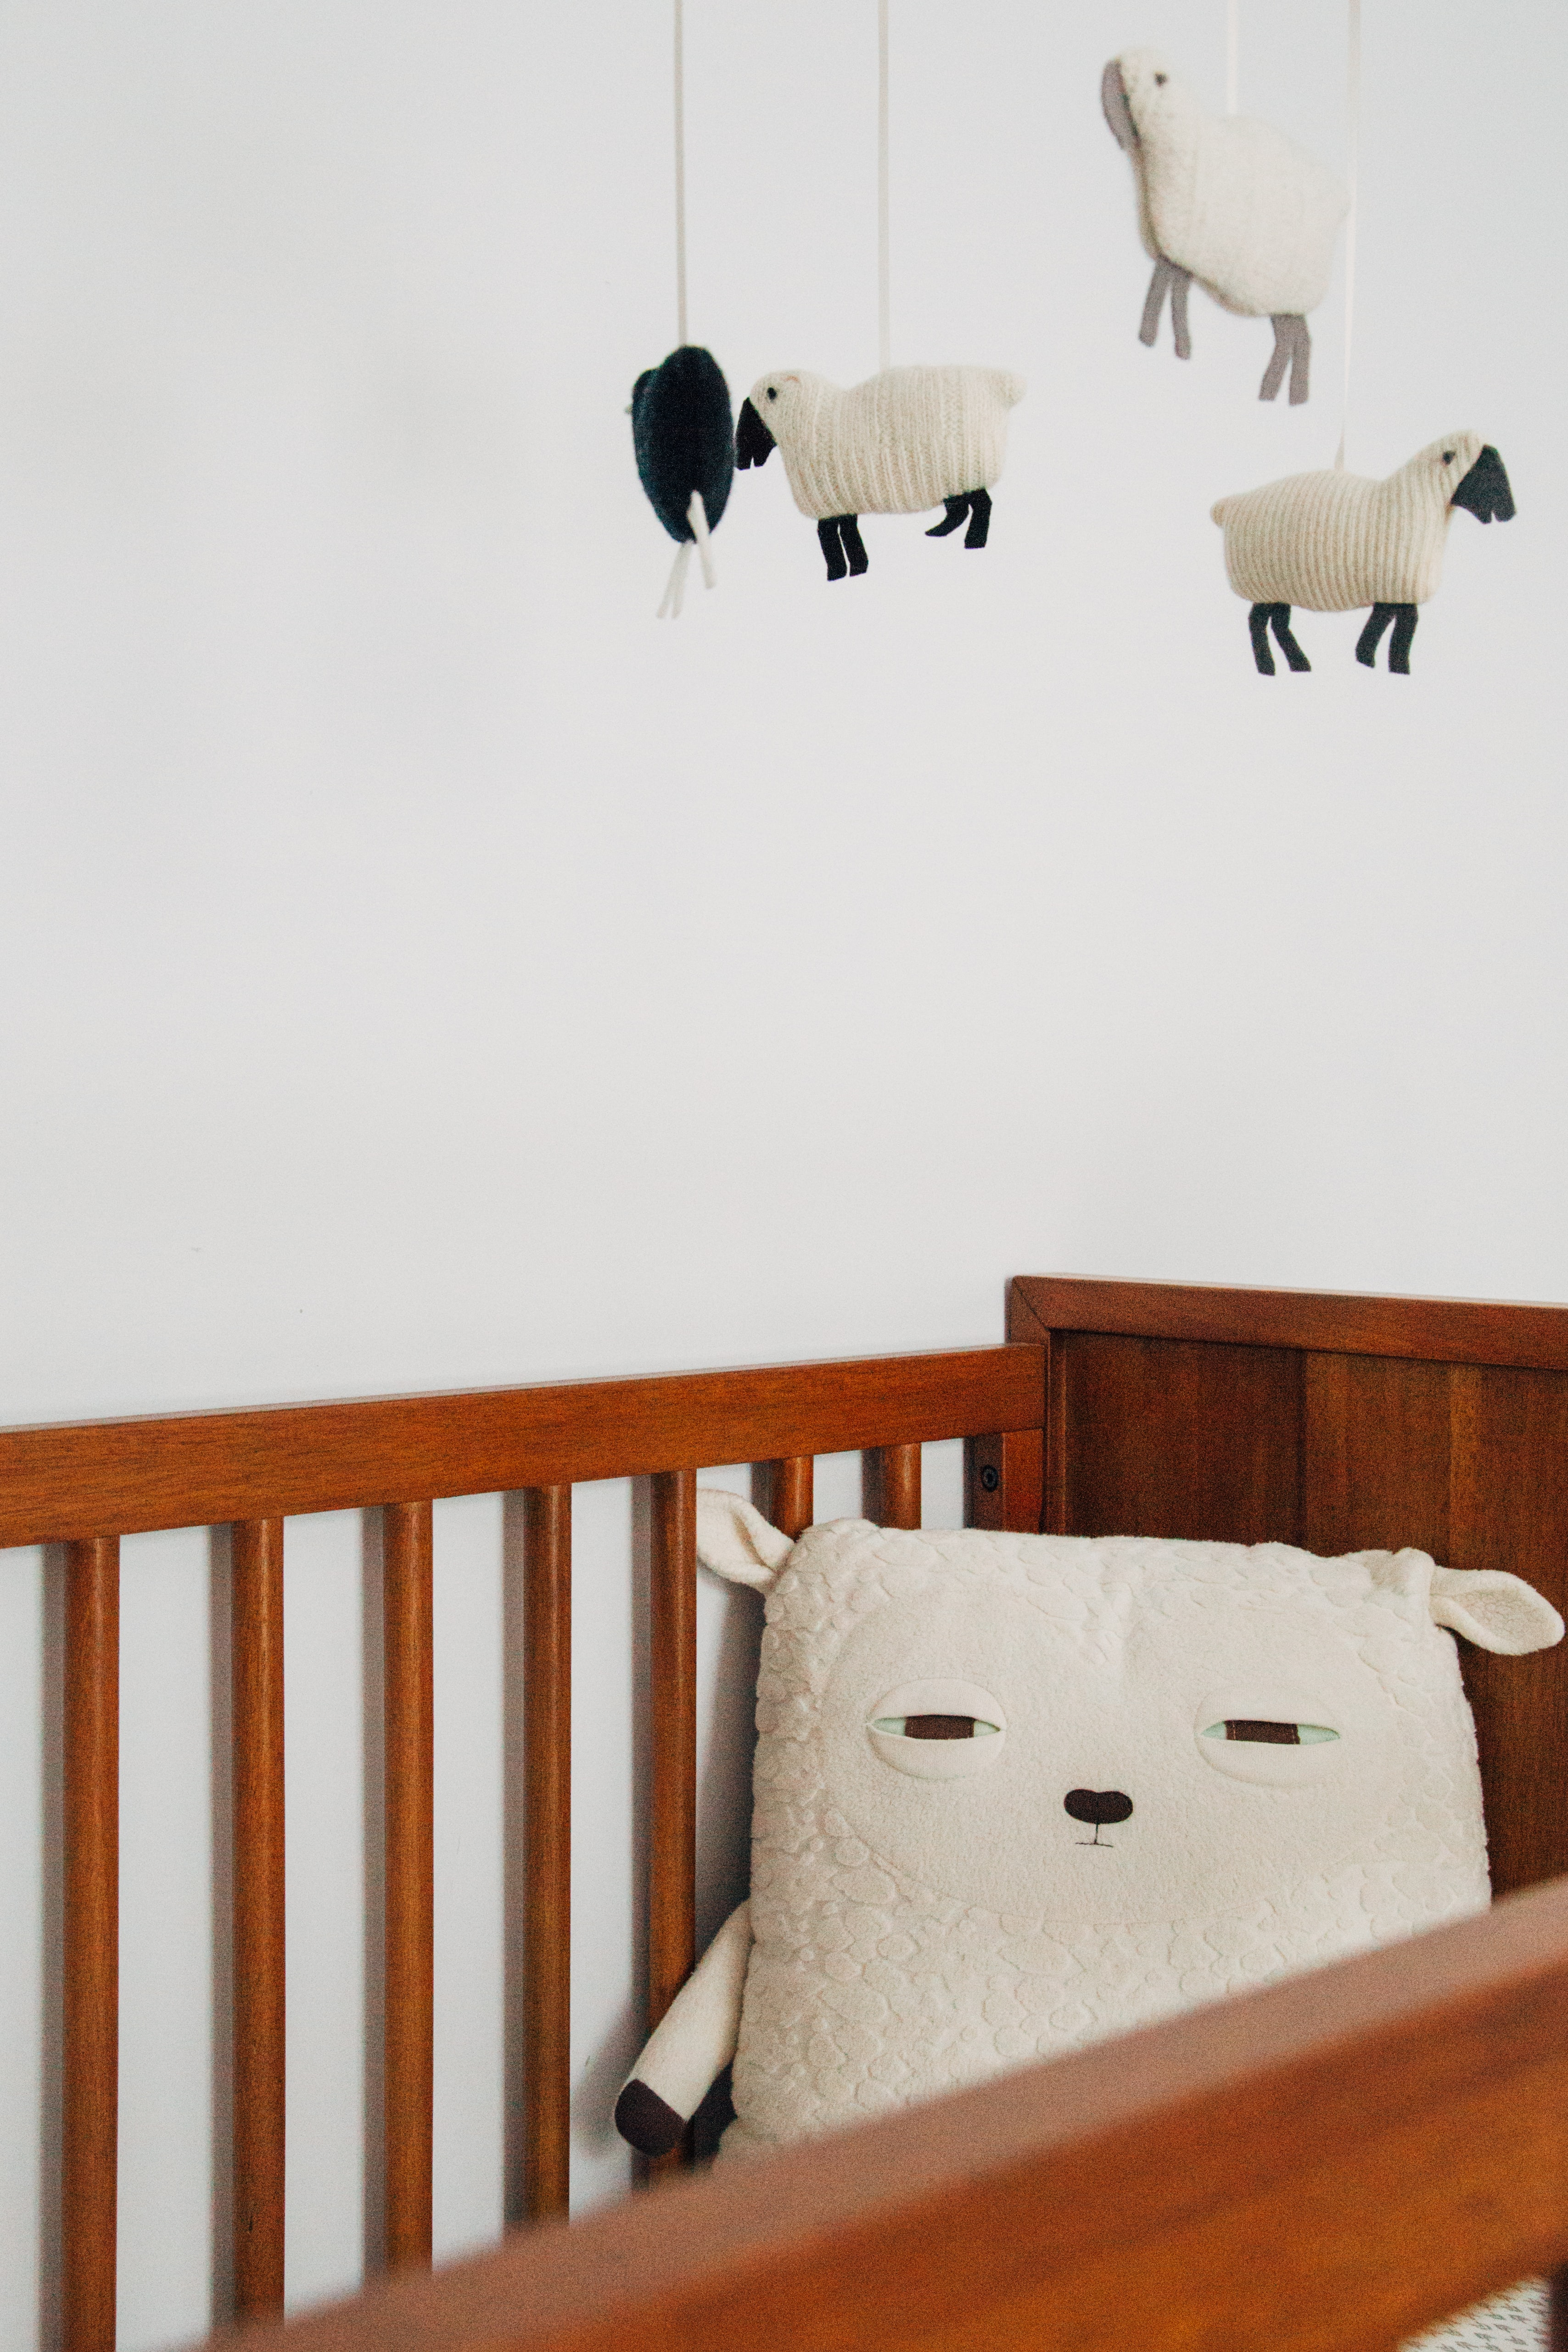 crib with sheep pillow and crib mobile